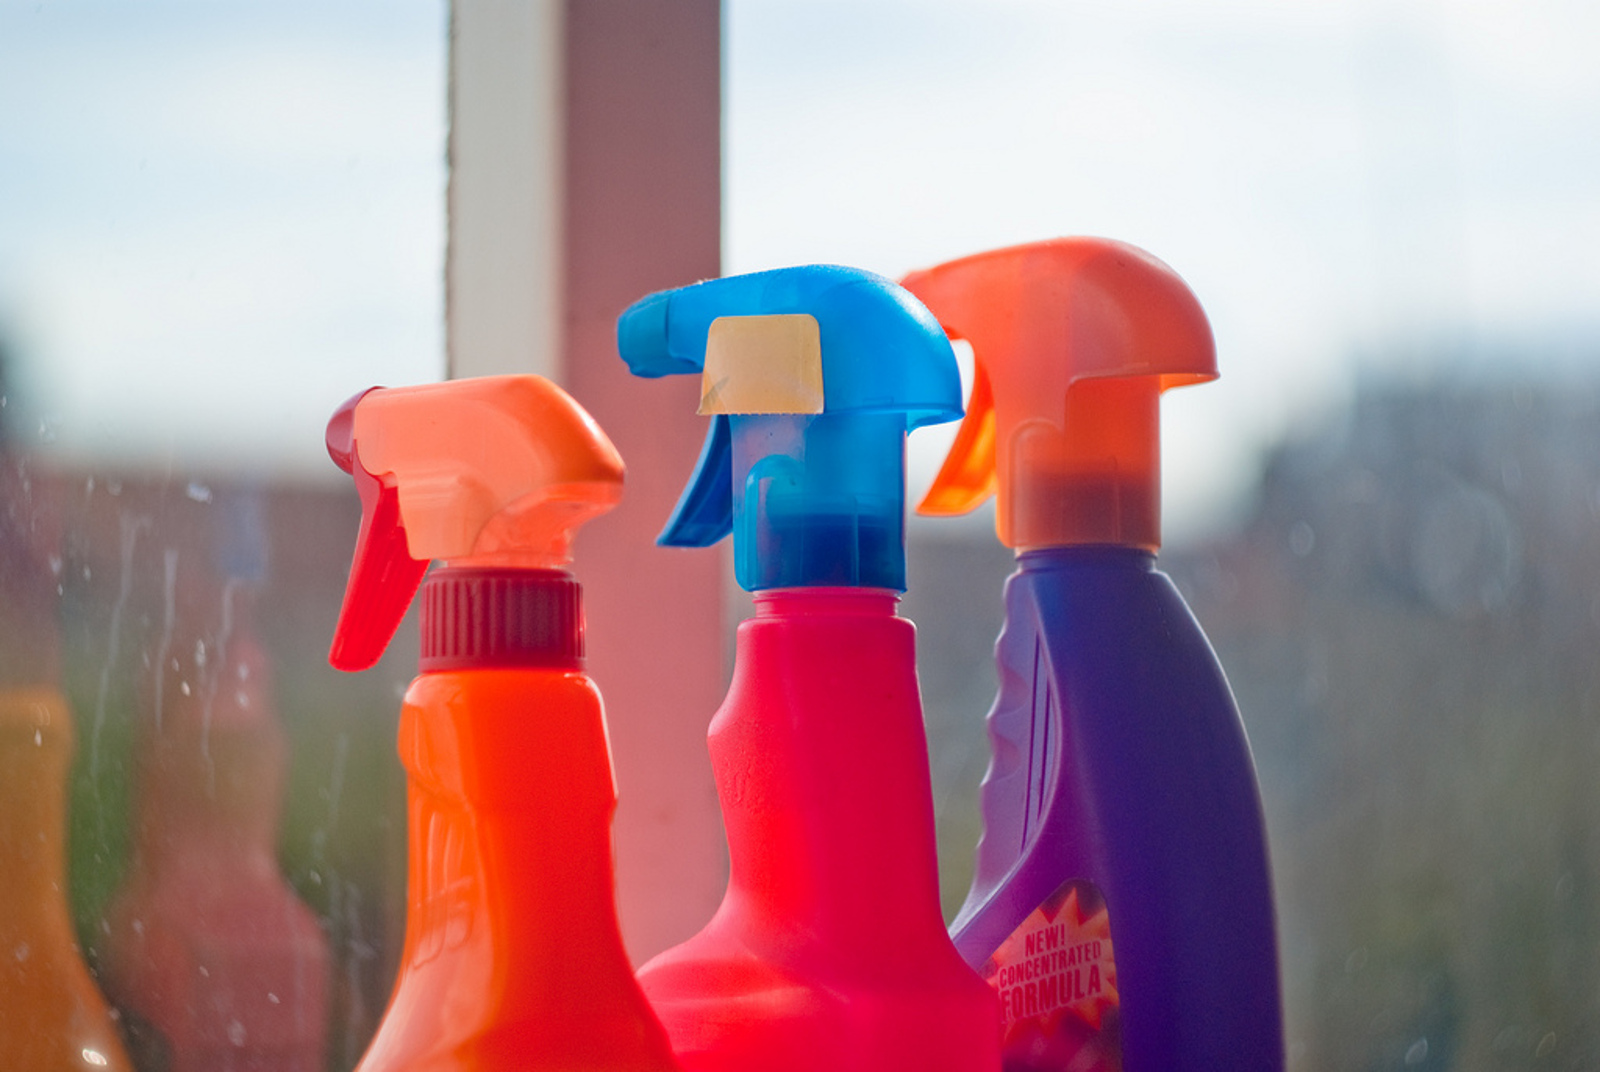 Do Consumers Have a Right to Know What Chemicals are in Cleaning Products?